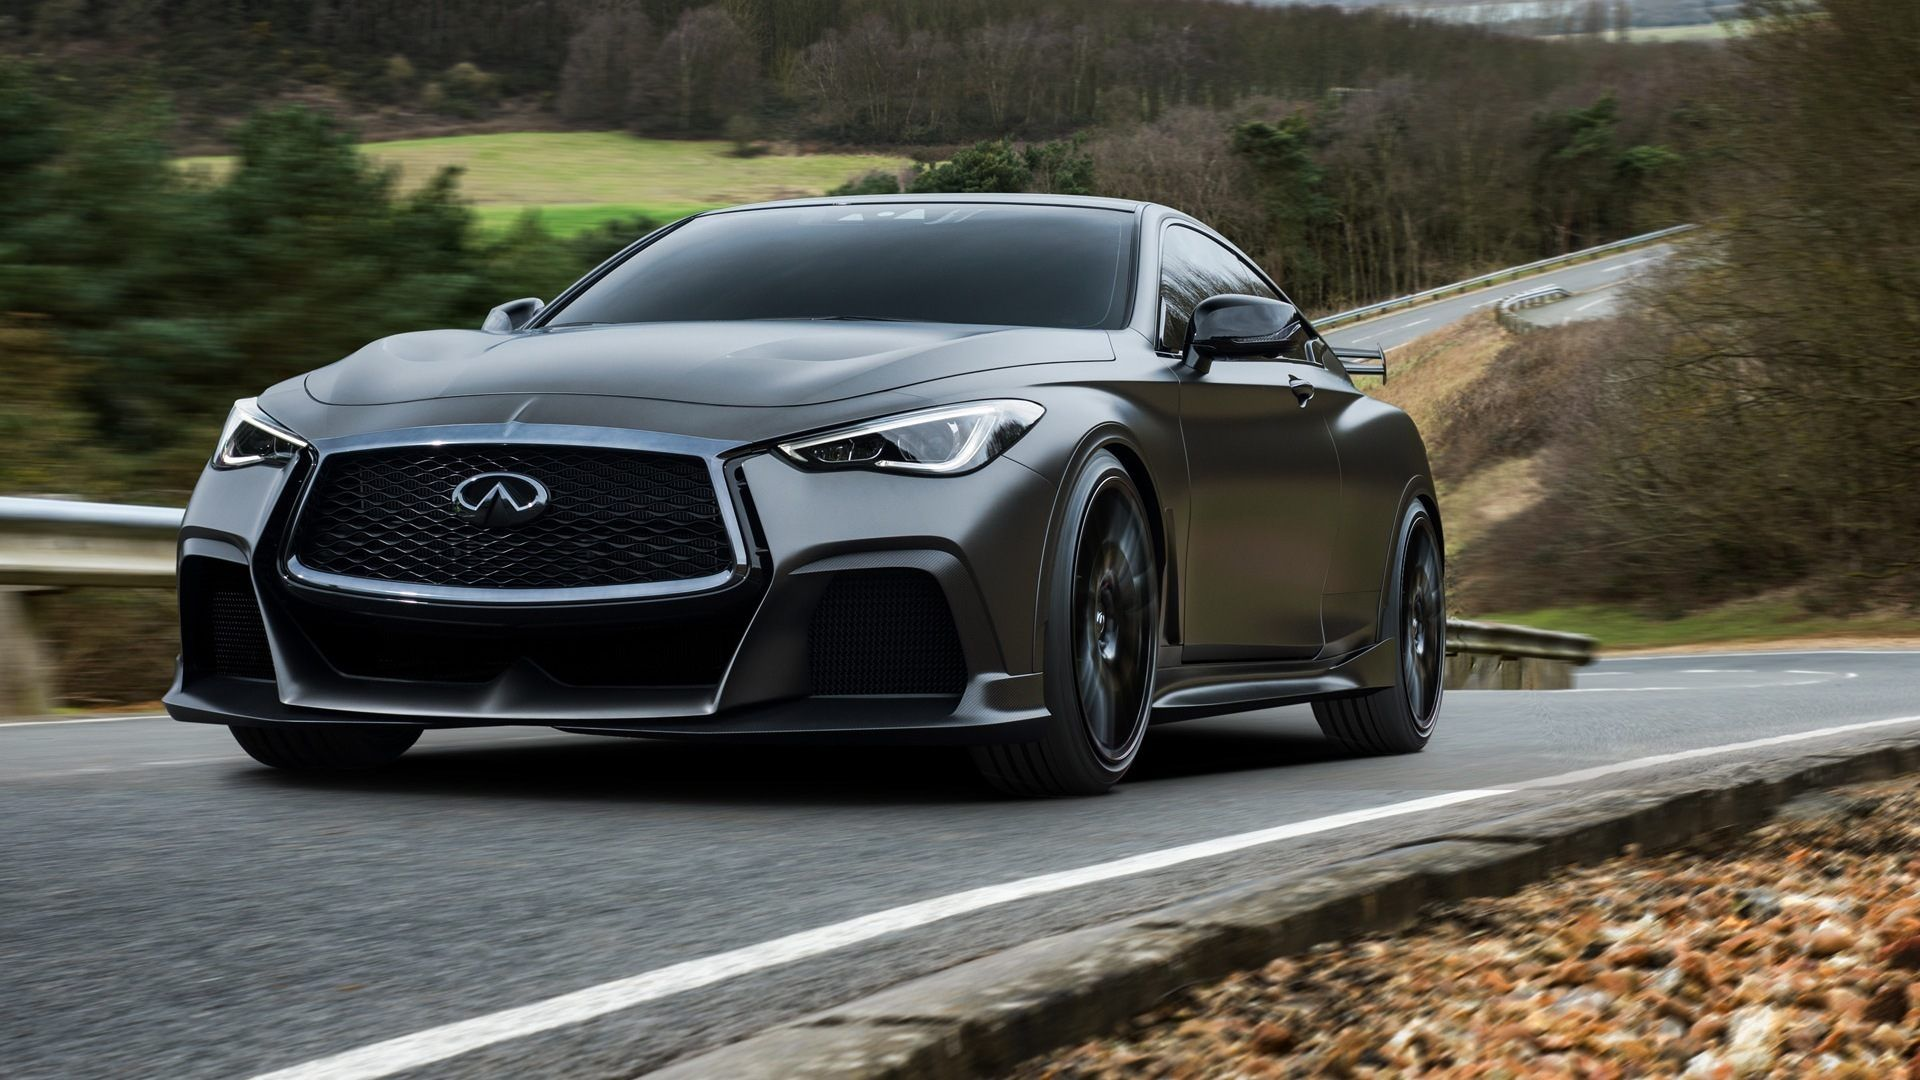 2020 Infiniti Q60 Specs Exterior And Interior Review Super Cars Infiniti New Infiniti